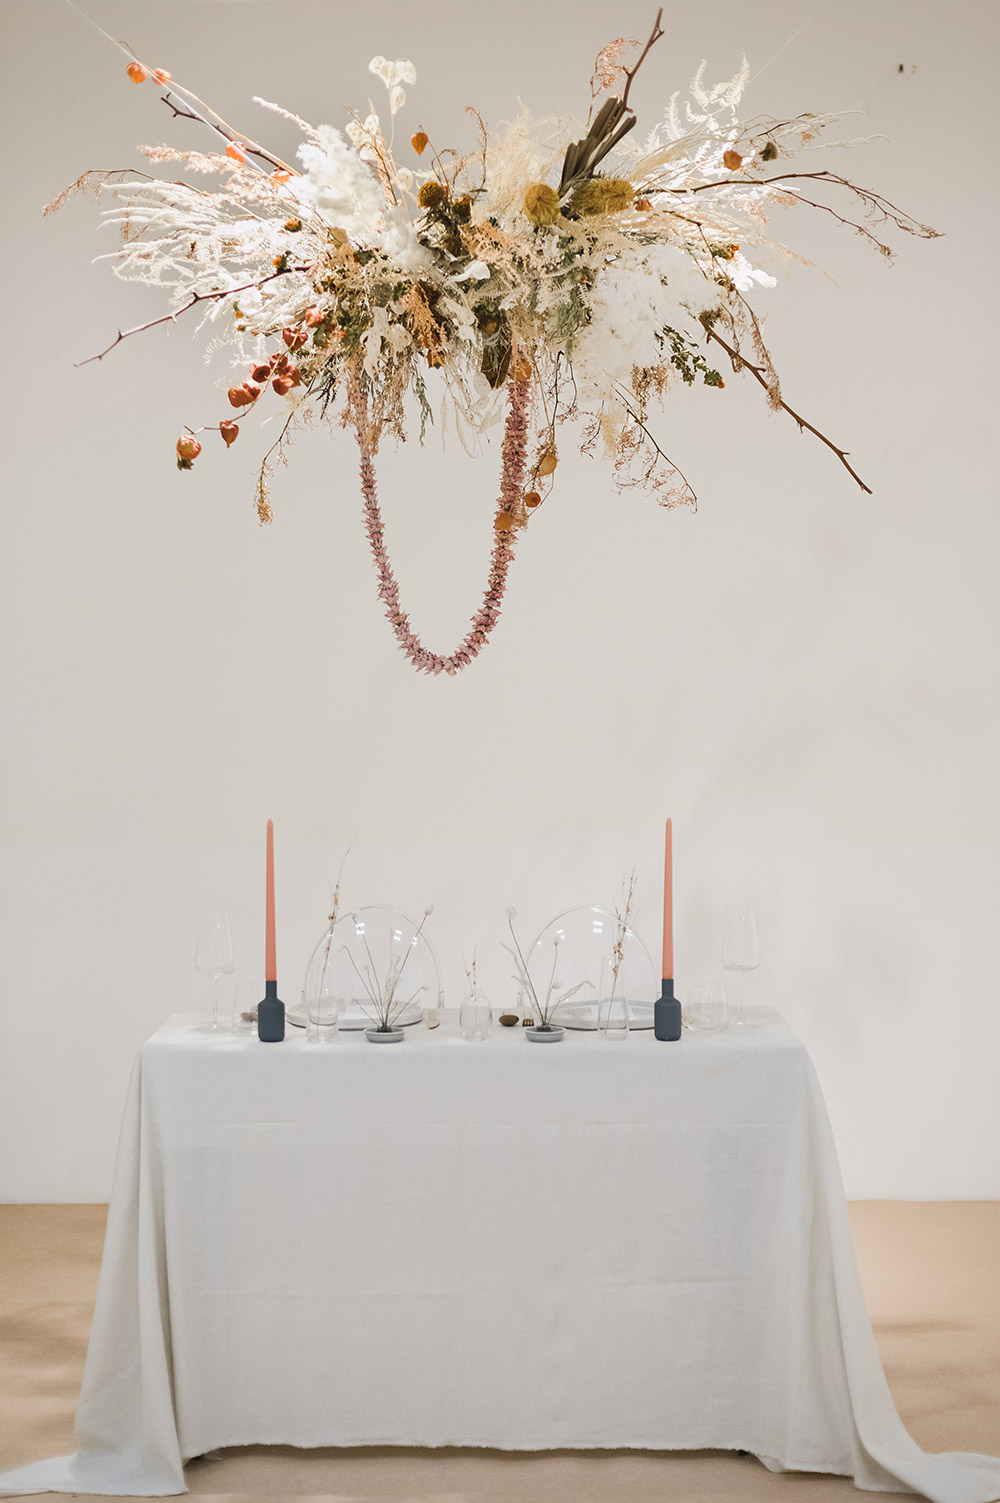 Decor by The Next Big Thing and Wildflowers. WAF - Weddings.Arts.Fashion. www.theweddingnotebook.com